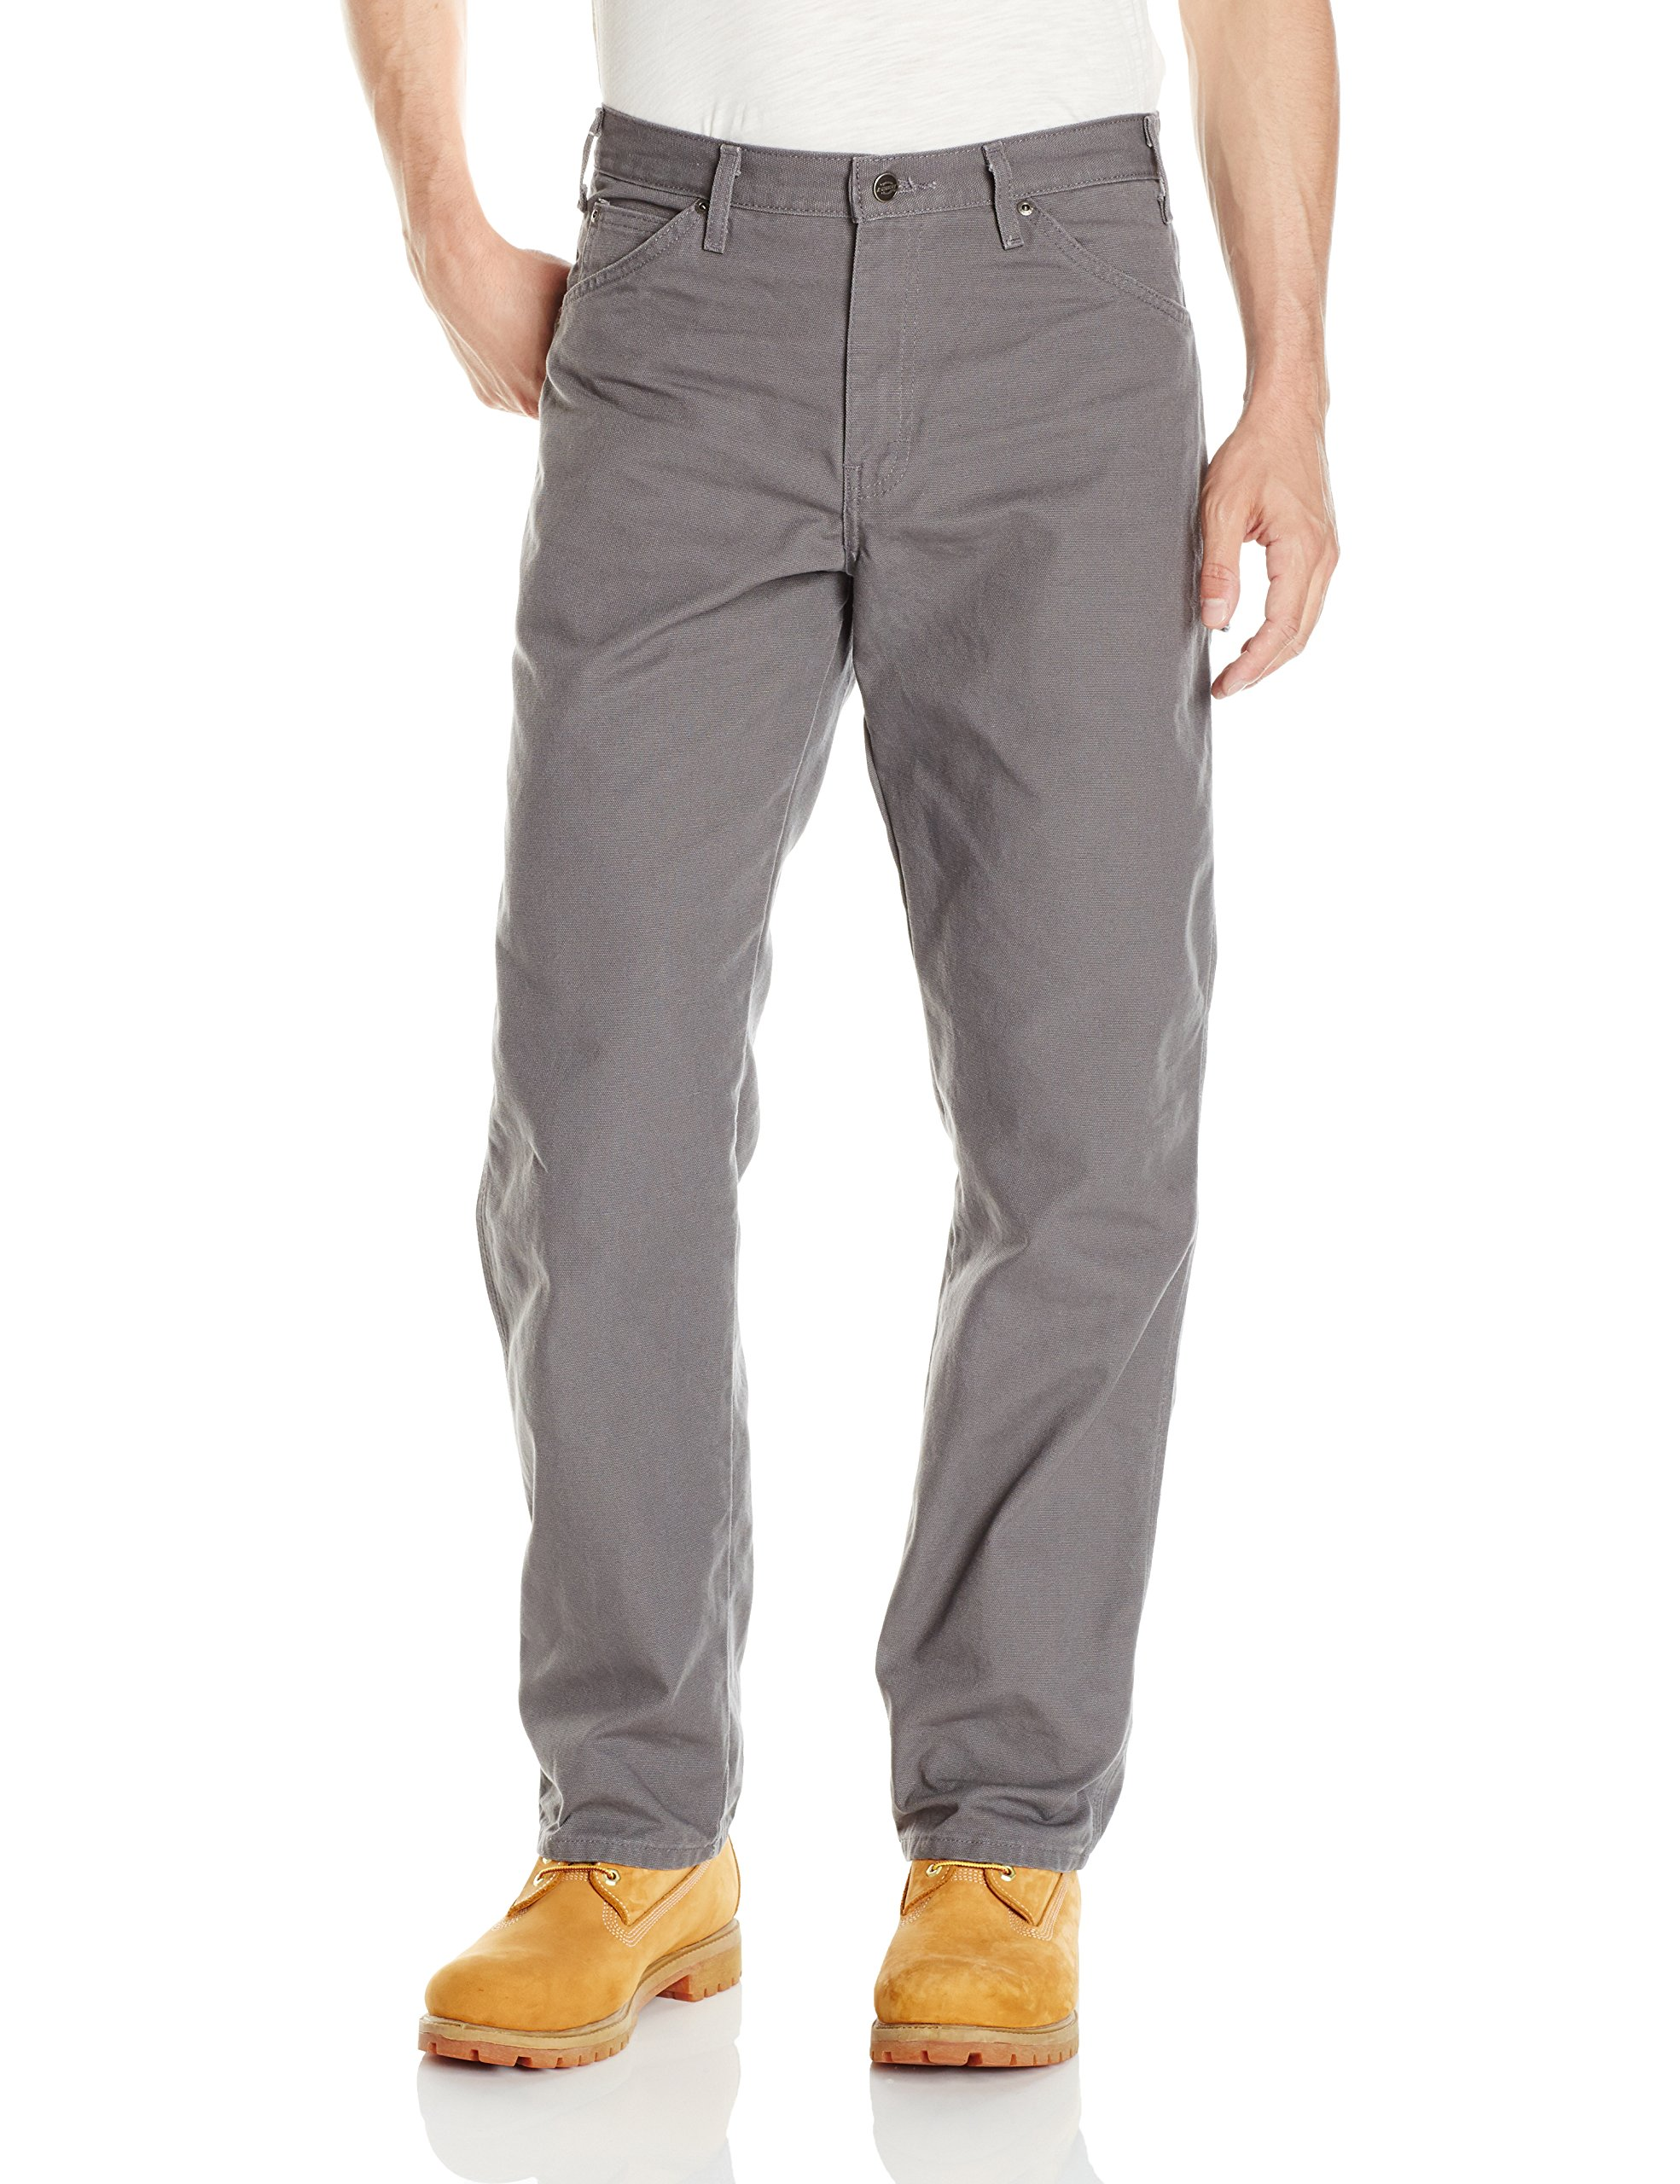 Dickies Men's Relaxed Fit Straight-Leg Duck Carpenter Jean, Slate, 34W x 32L by Dickies